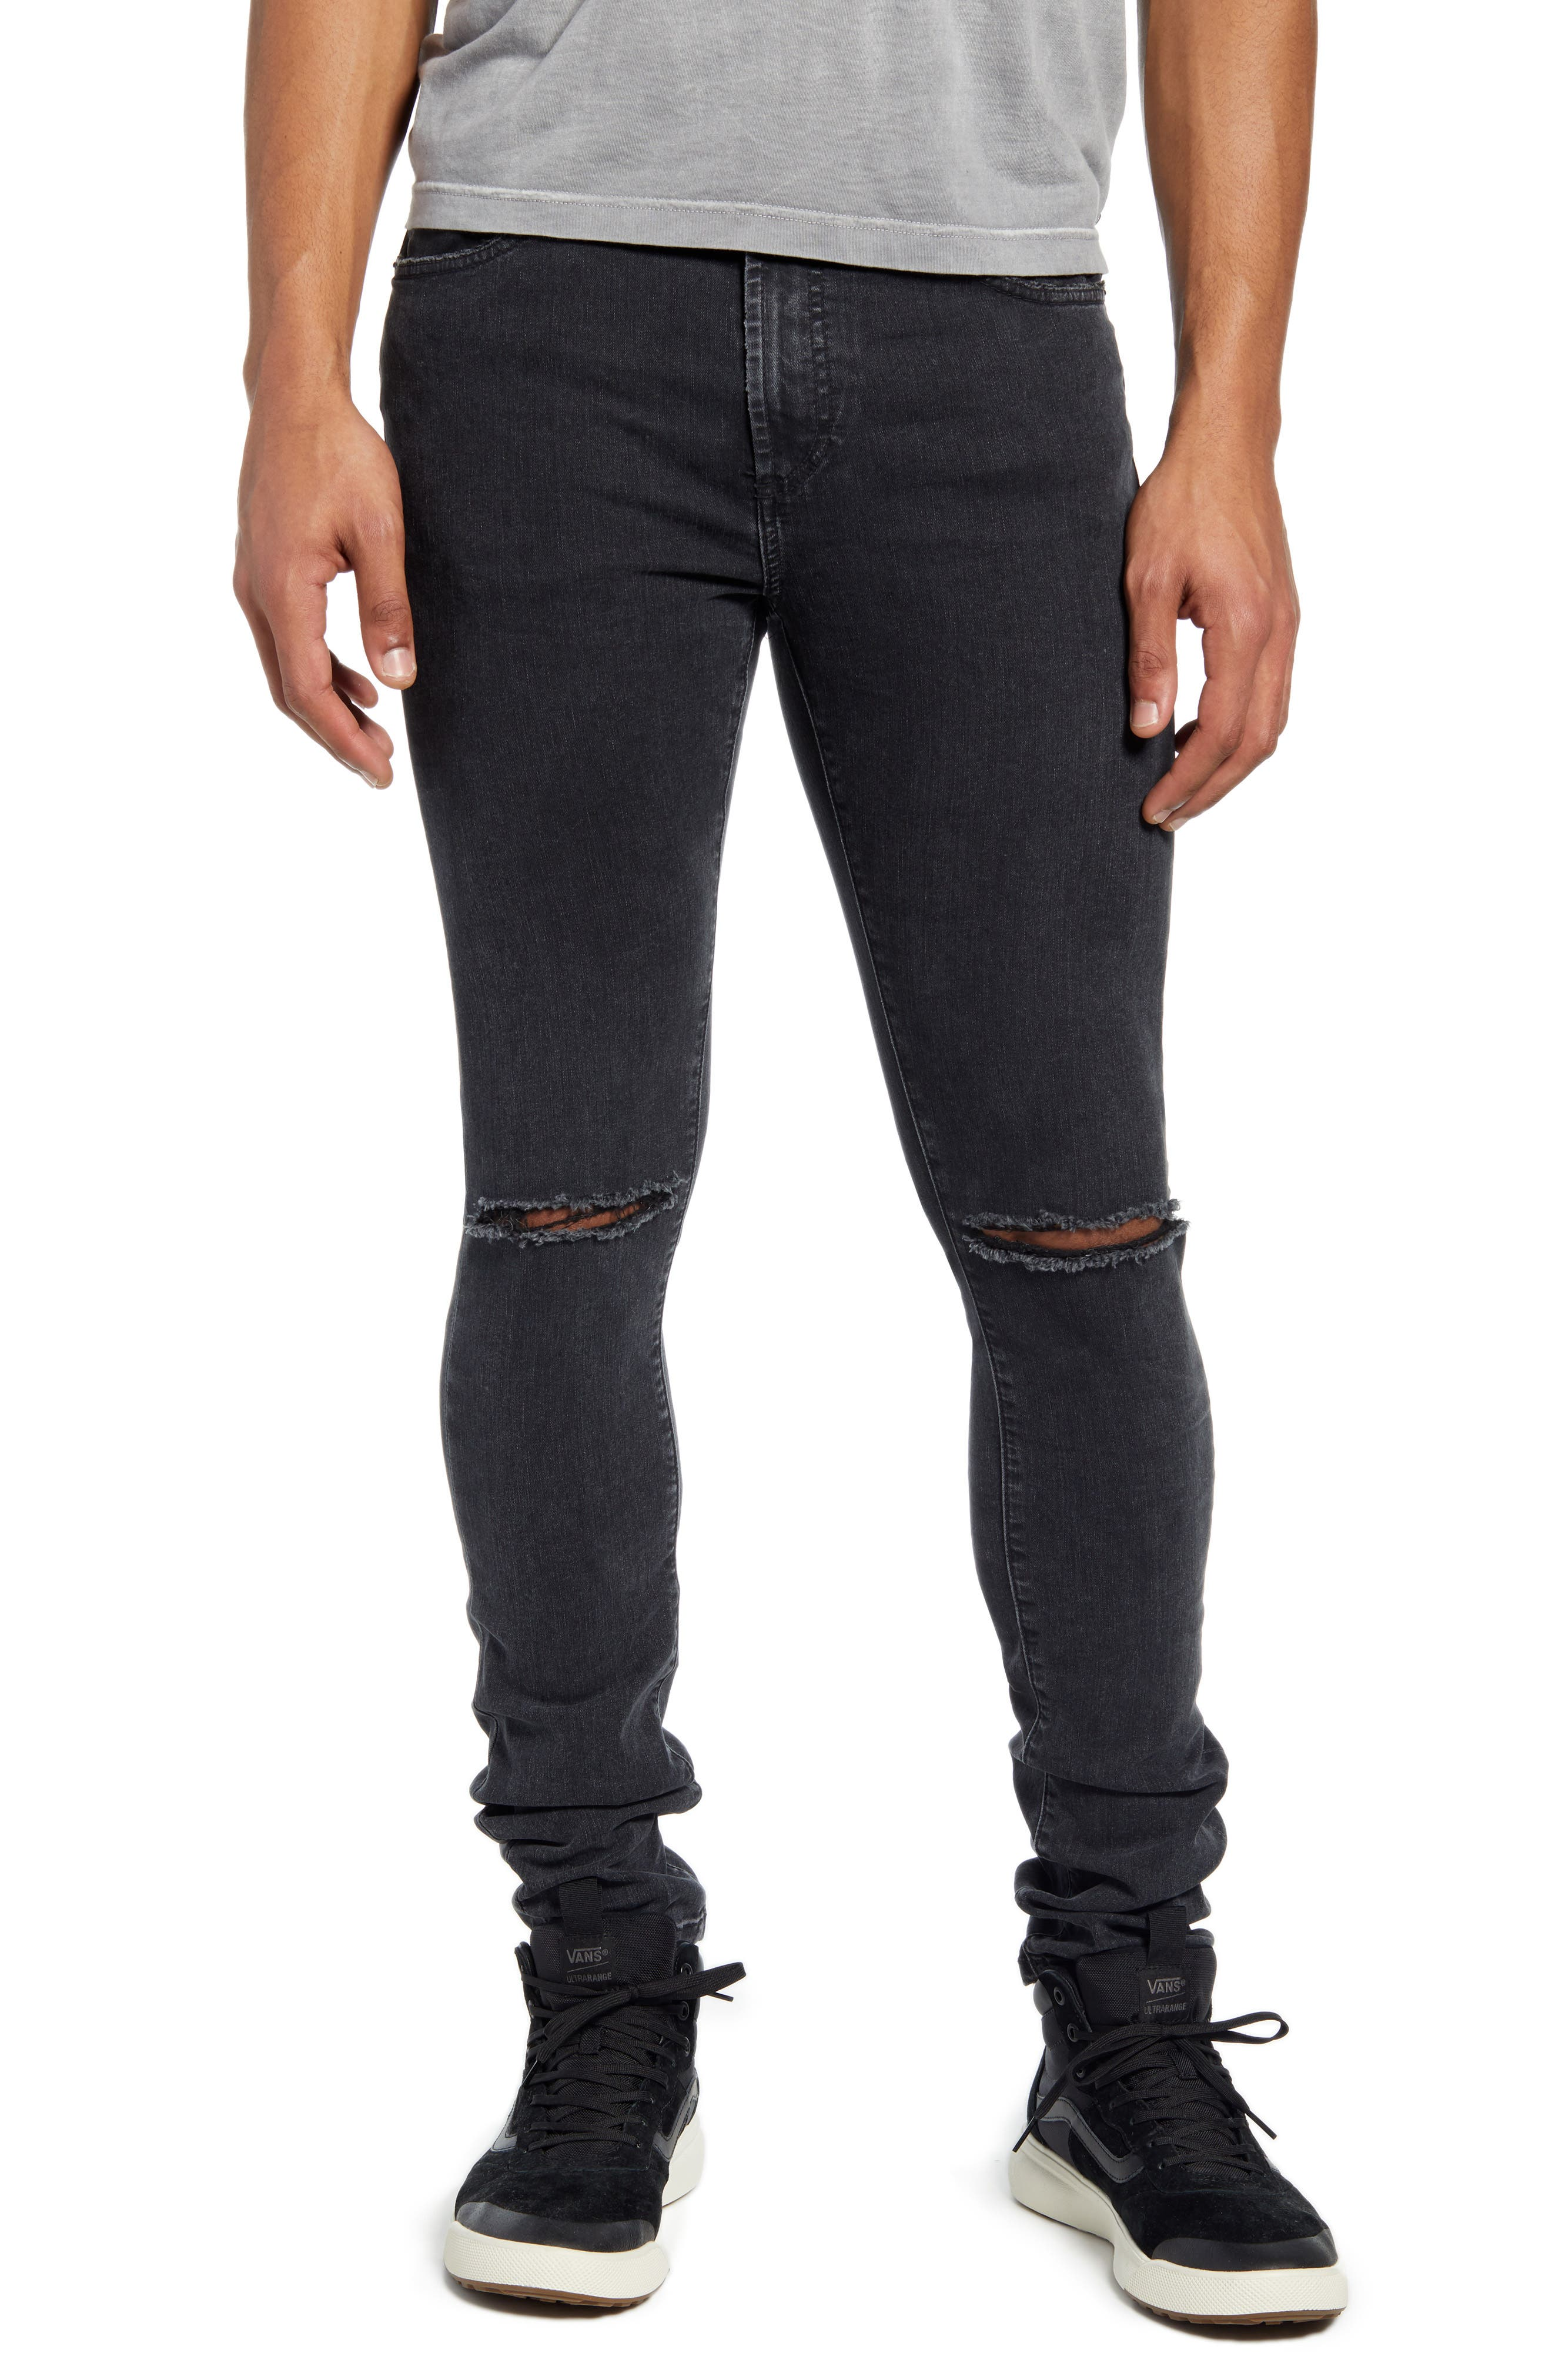 Image of MONFRERE Greyson Skinny Fit Jeans